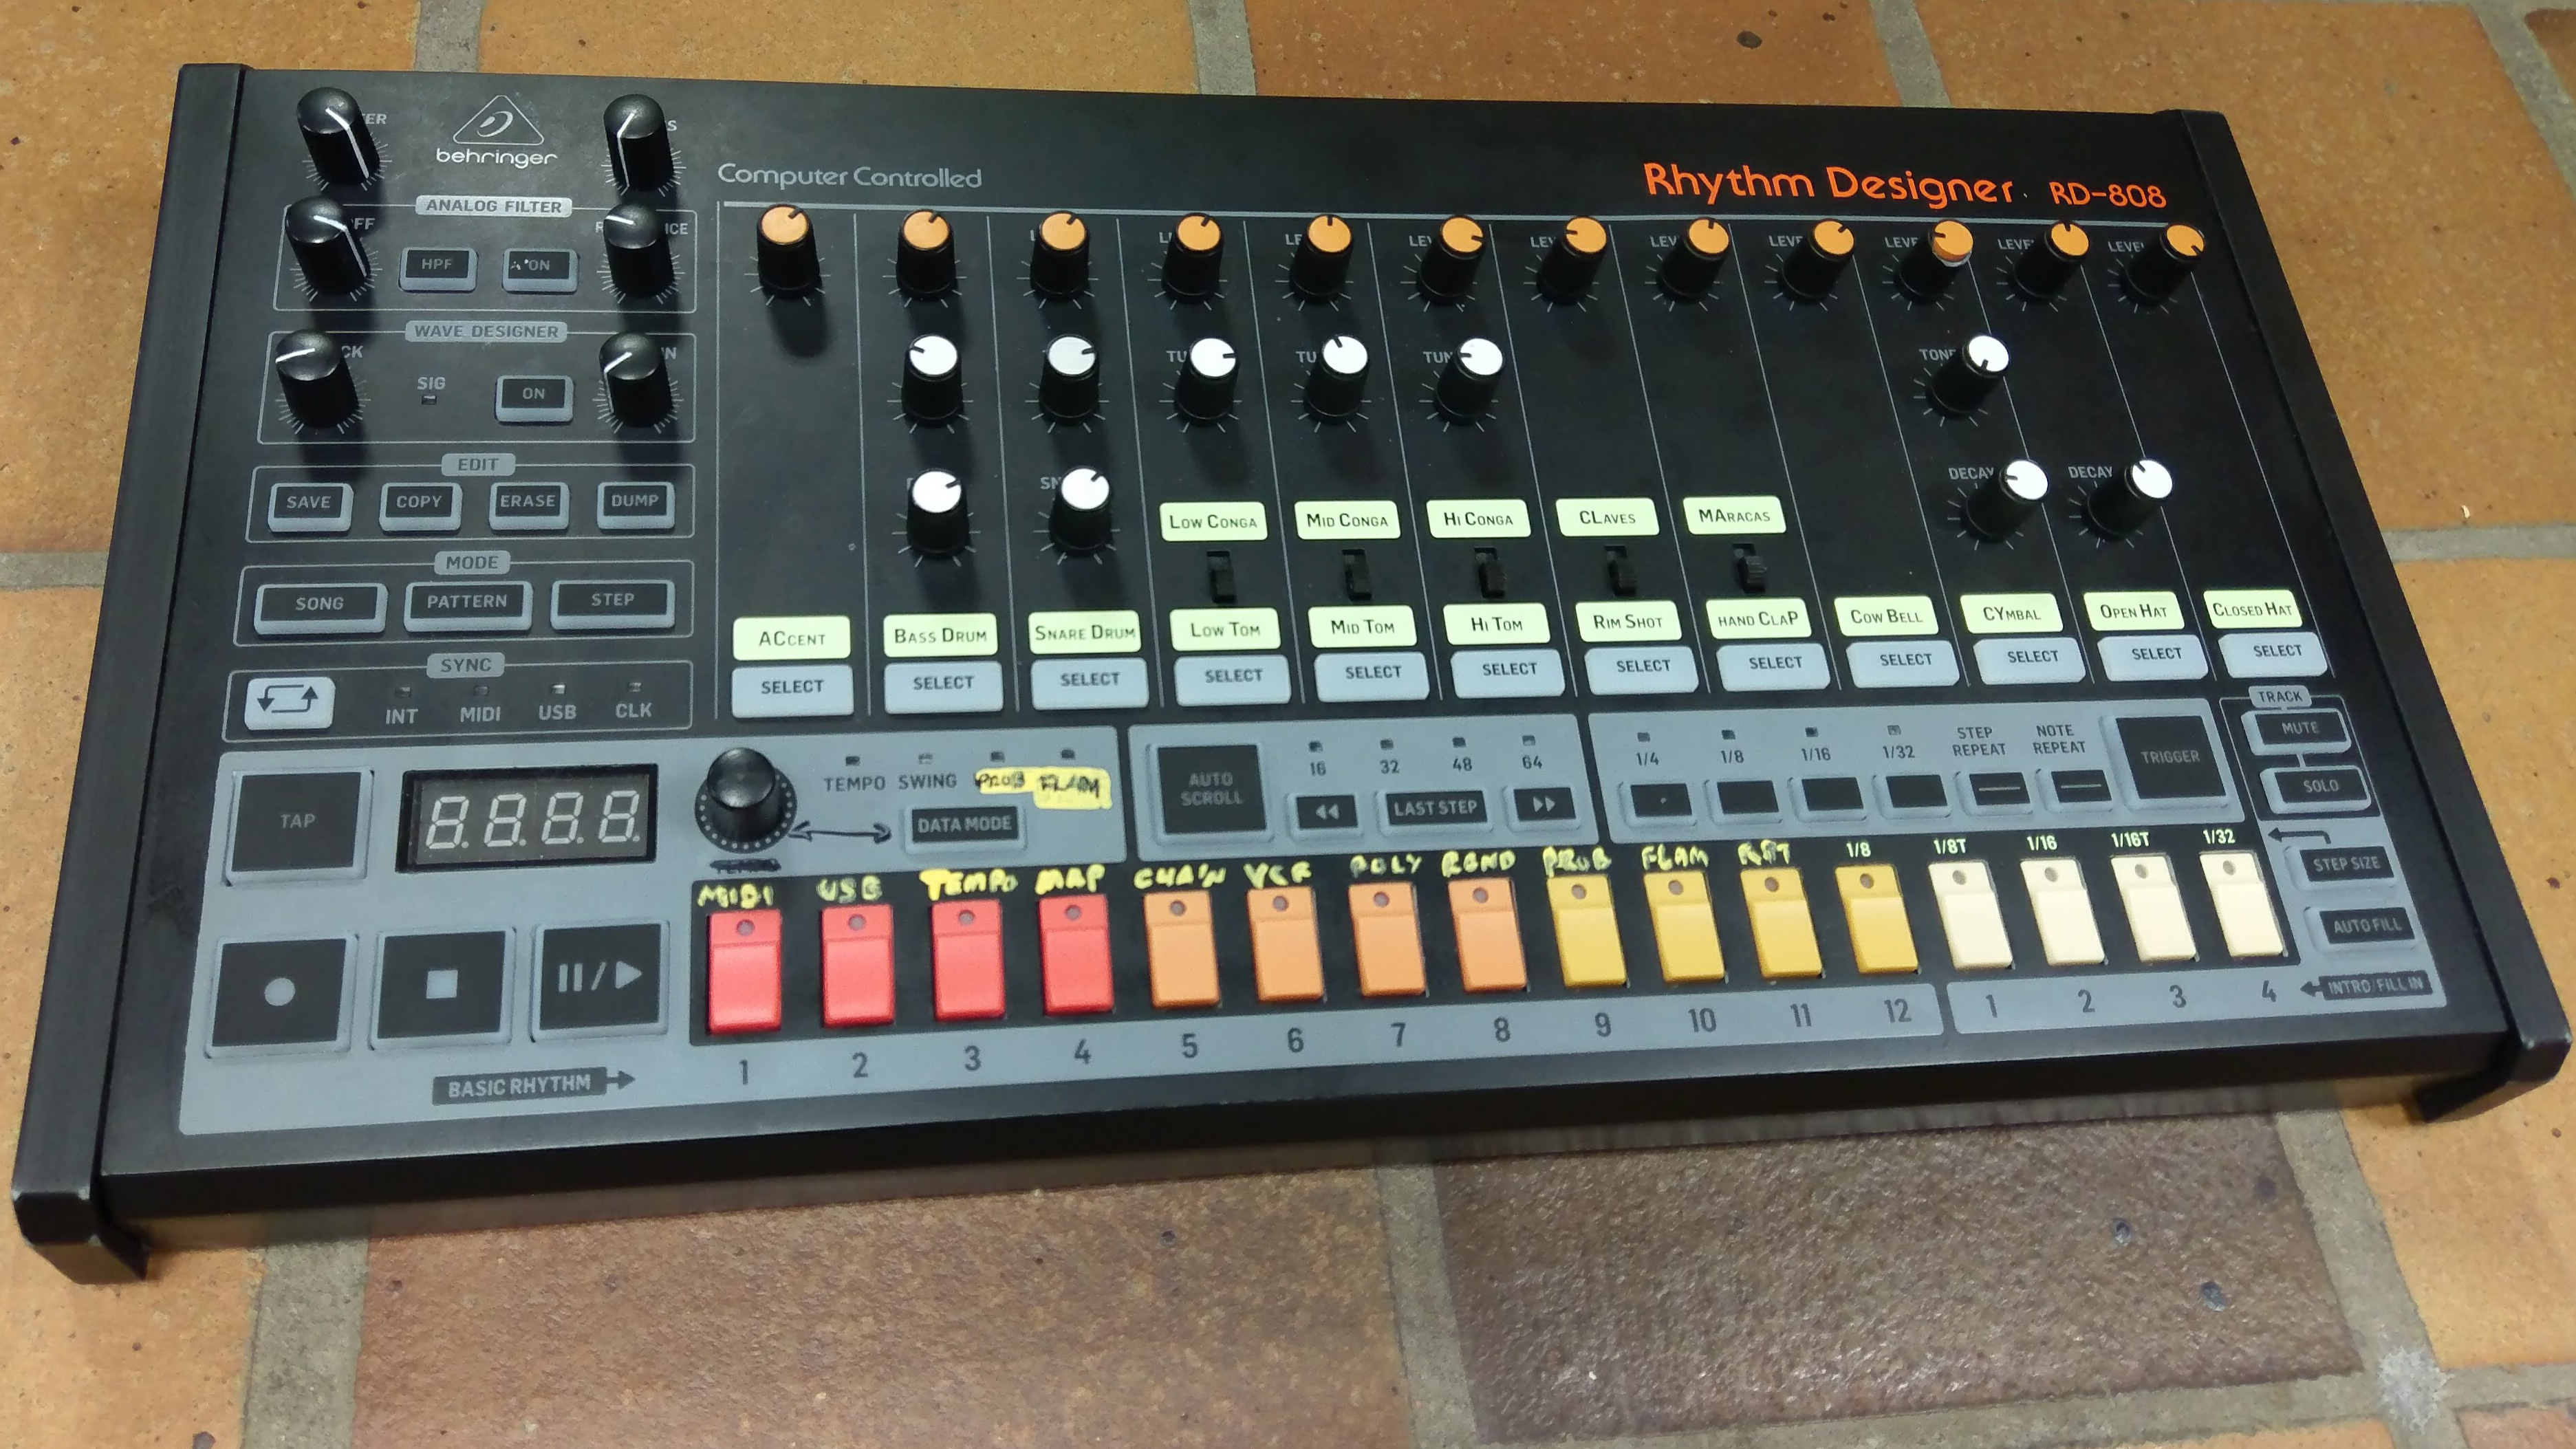 Superbooth 2018: Behringer comes good on drum machine promise with